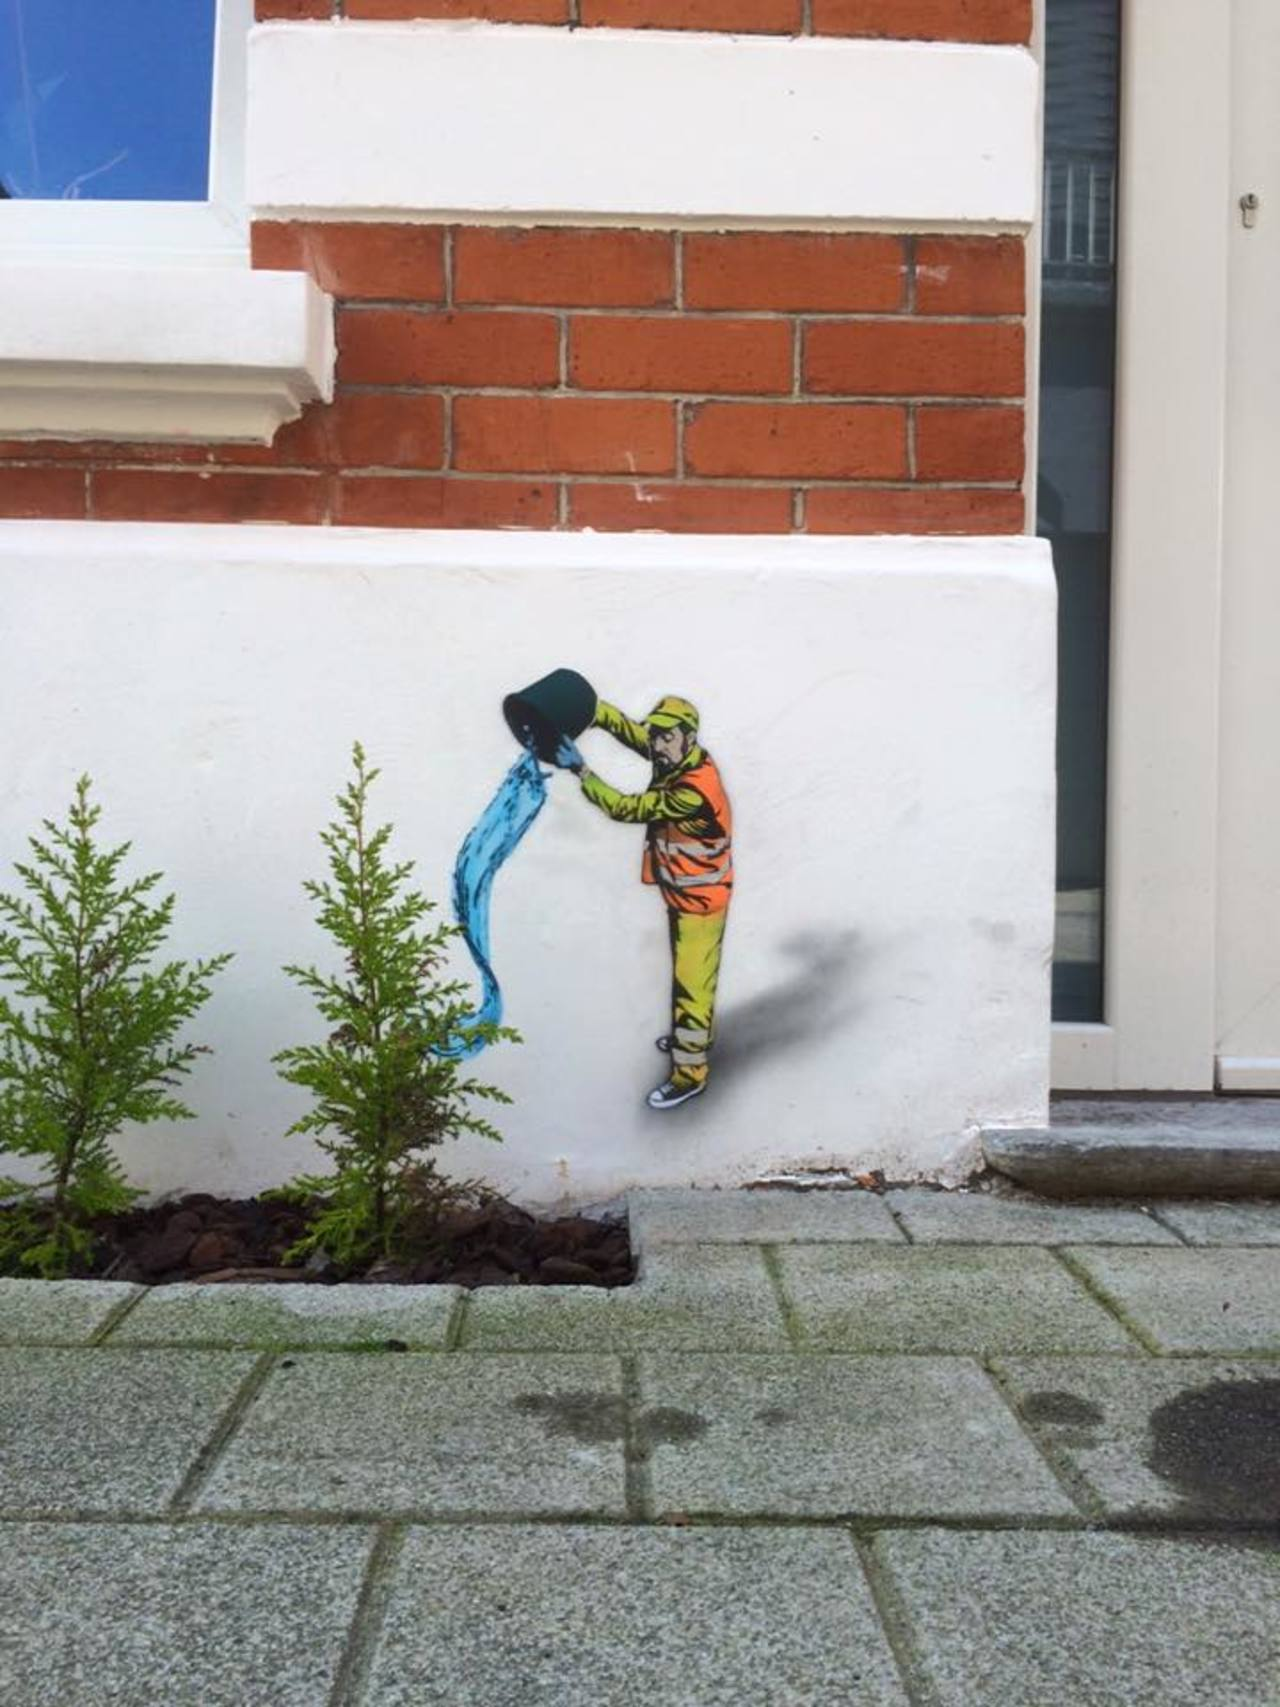 Miniature pieces by Jaune in Oostende, Belgium http://ow.ly/10mhkb #Art #StreetArt #Graffiti #Water #Plants https://t.co/nlT6UJyi9D